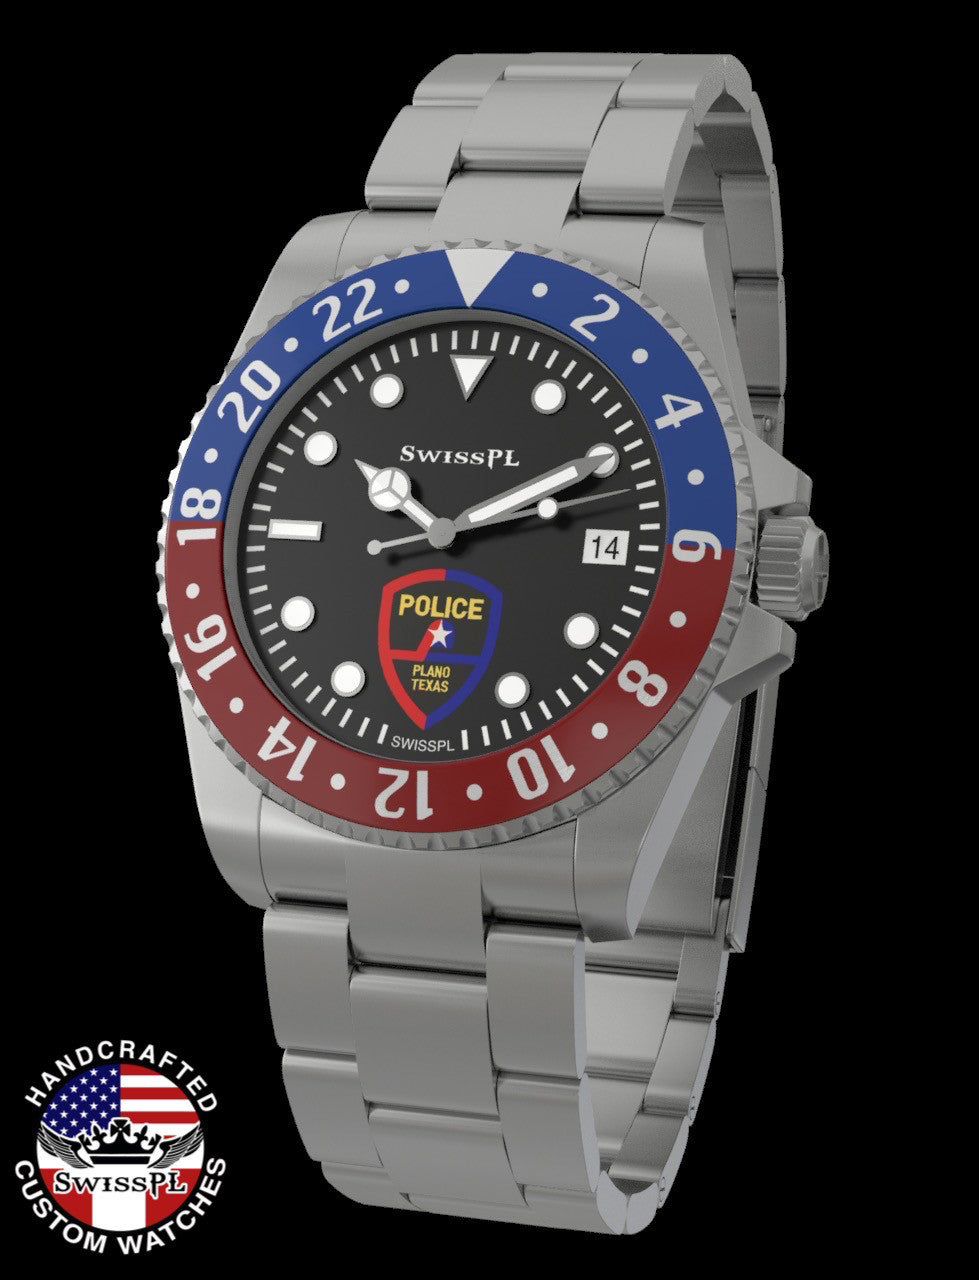 plano products watches for custom handcrafted made you swisspl usa pd the in just